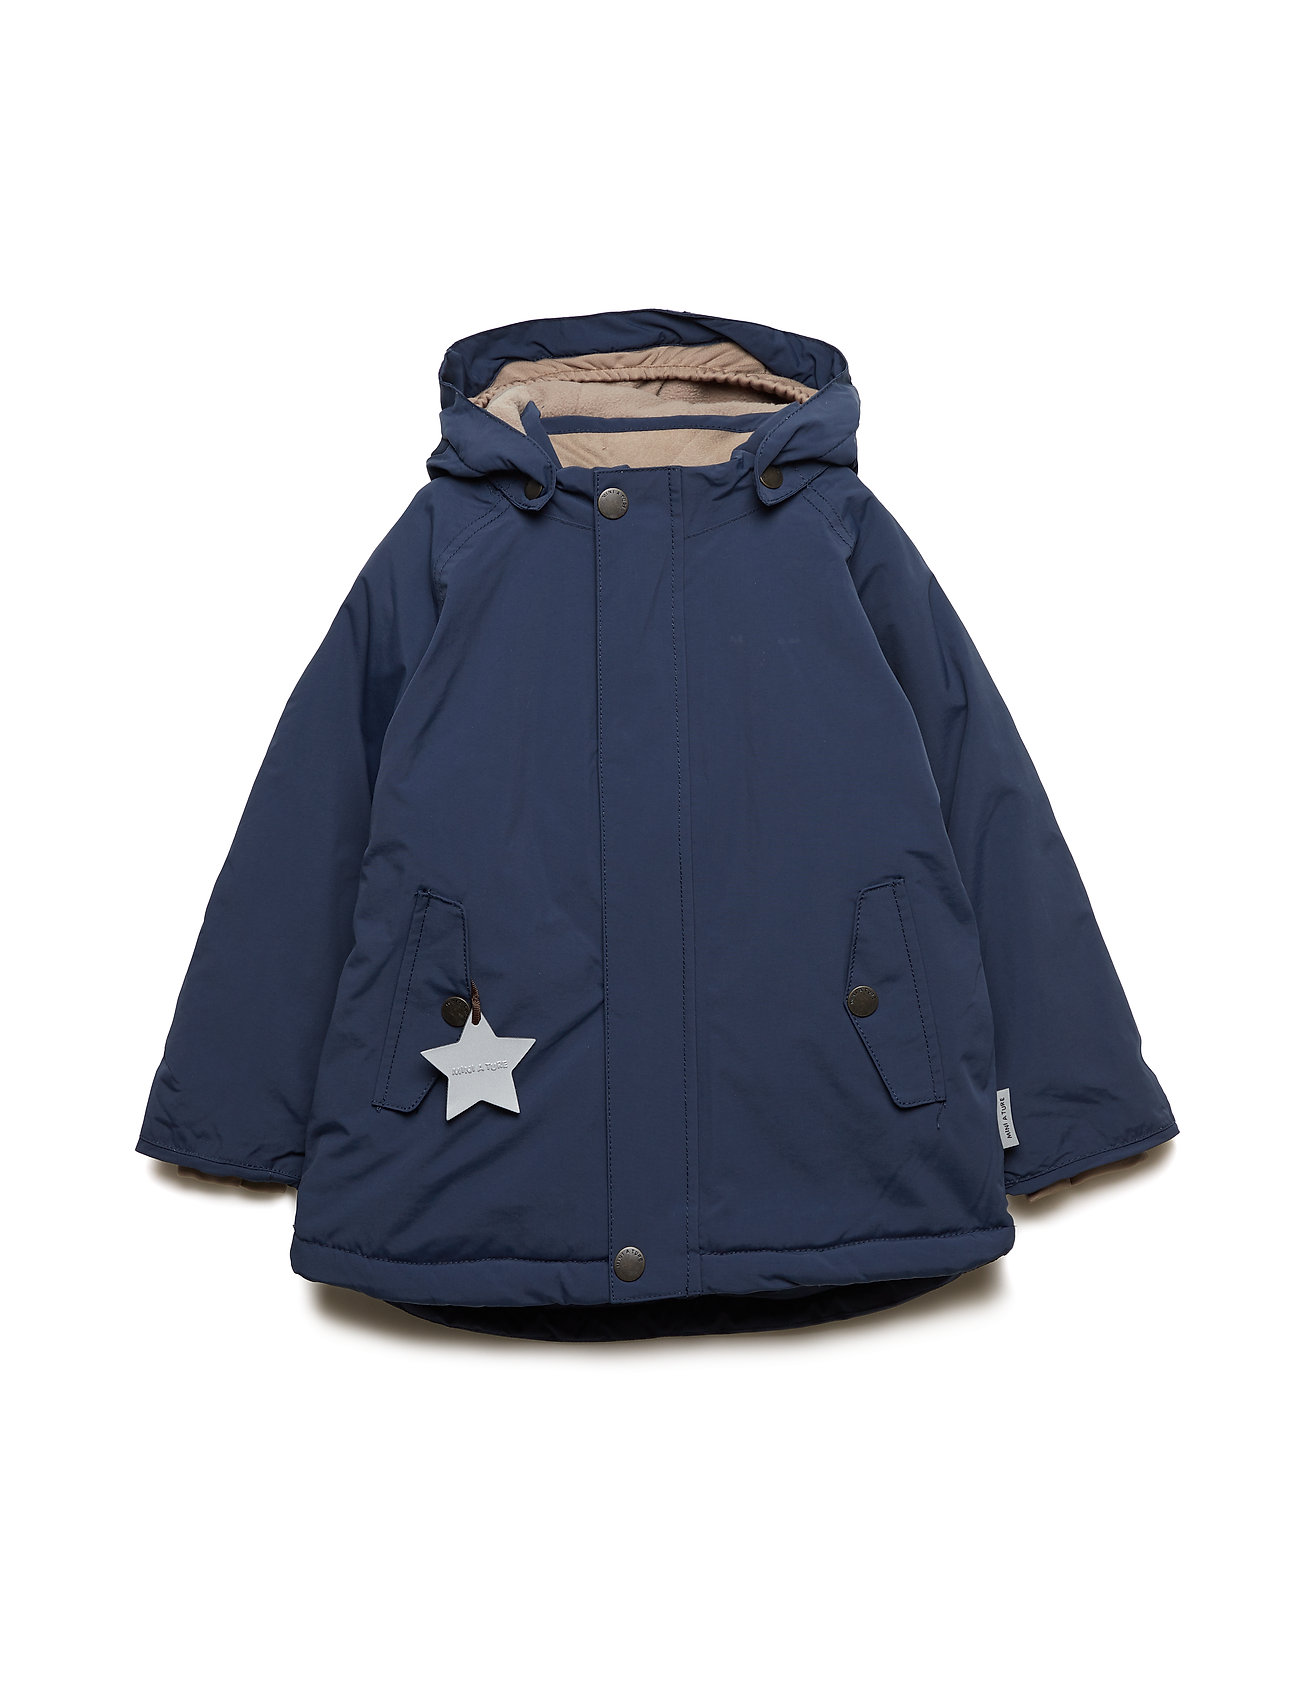 Mini A Ture Wally Jacket, M - PEACOAT BLUE